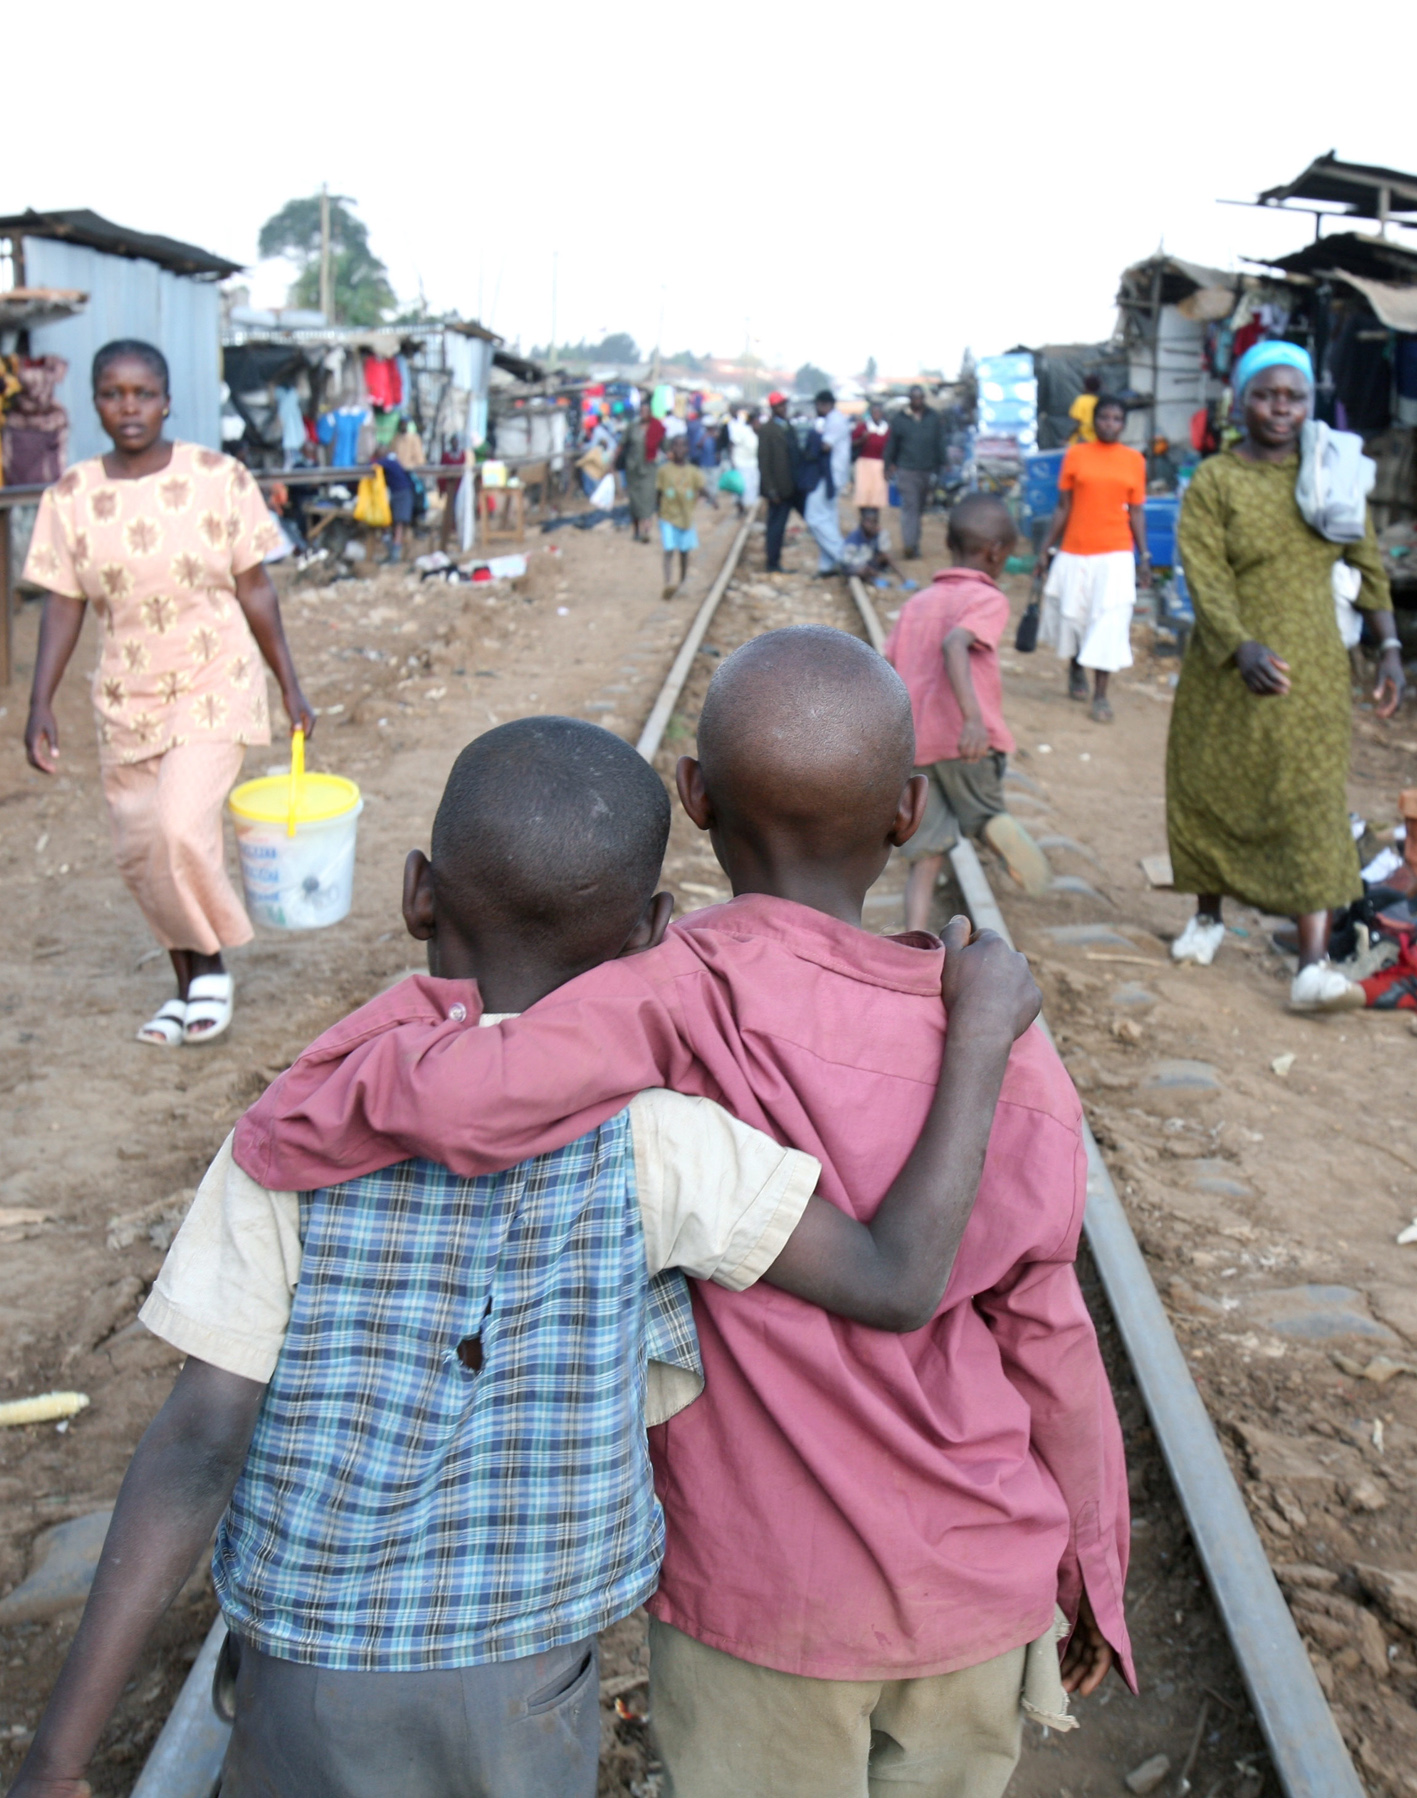 Young boys on their way home from school in the Kibera slum, Nairobi